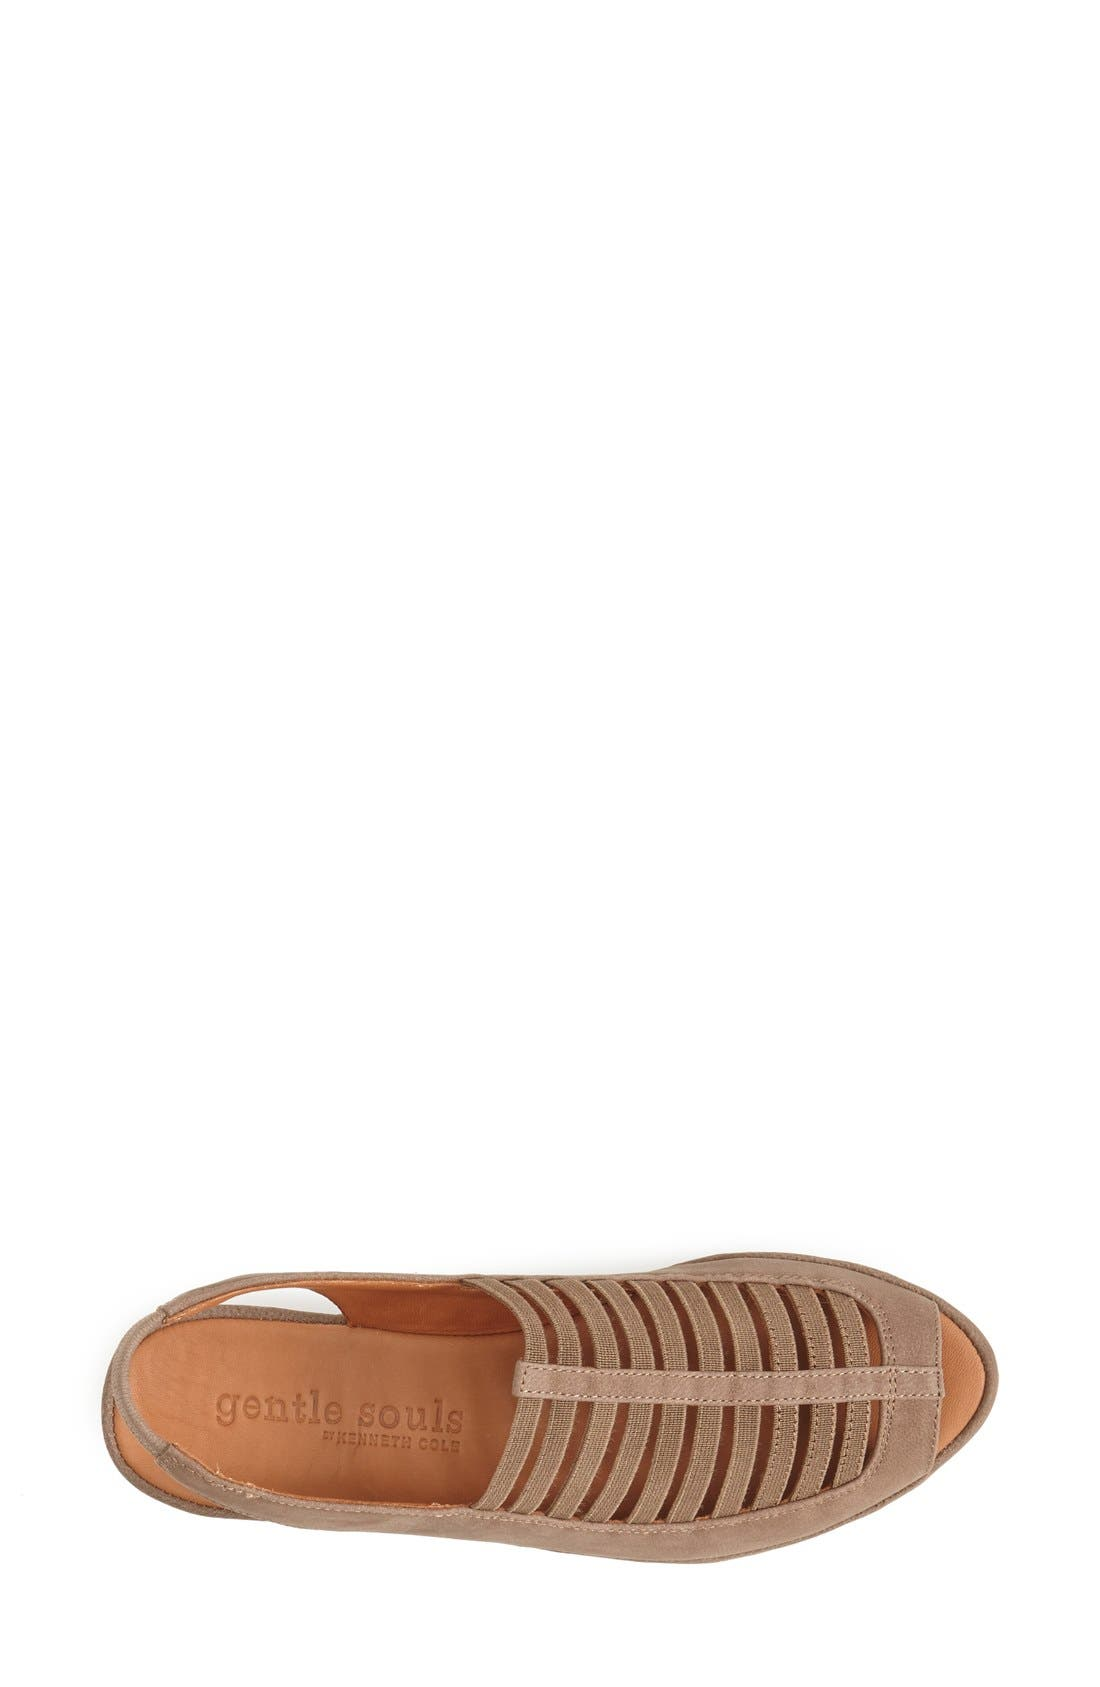 by Kenneth Cole 'Lee' Sandal,                             Alternate thumbnail 24, color,